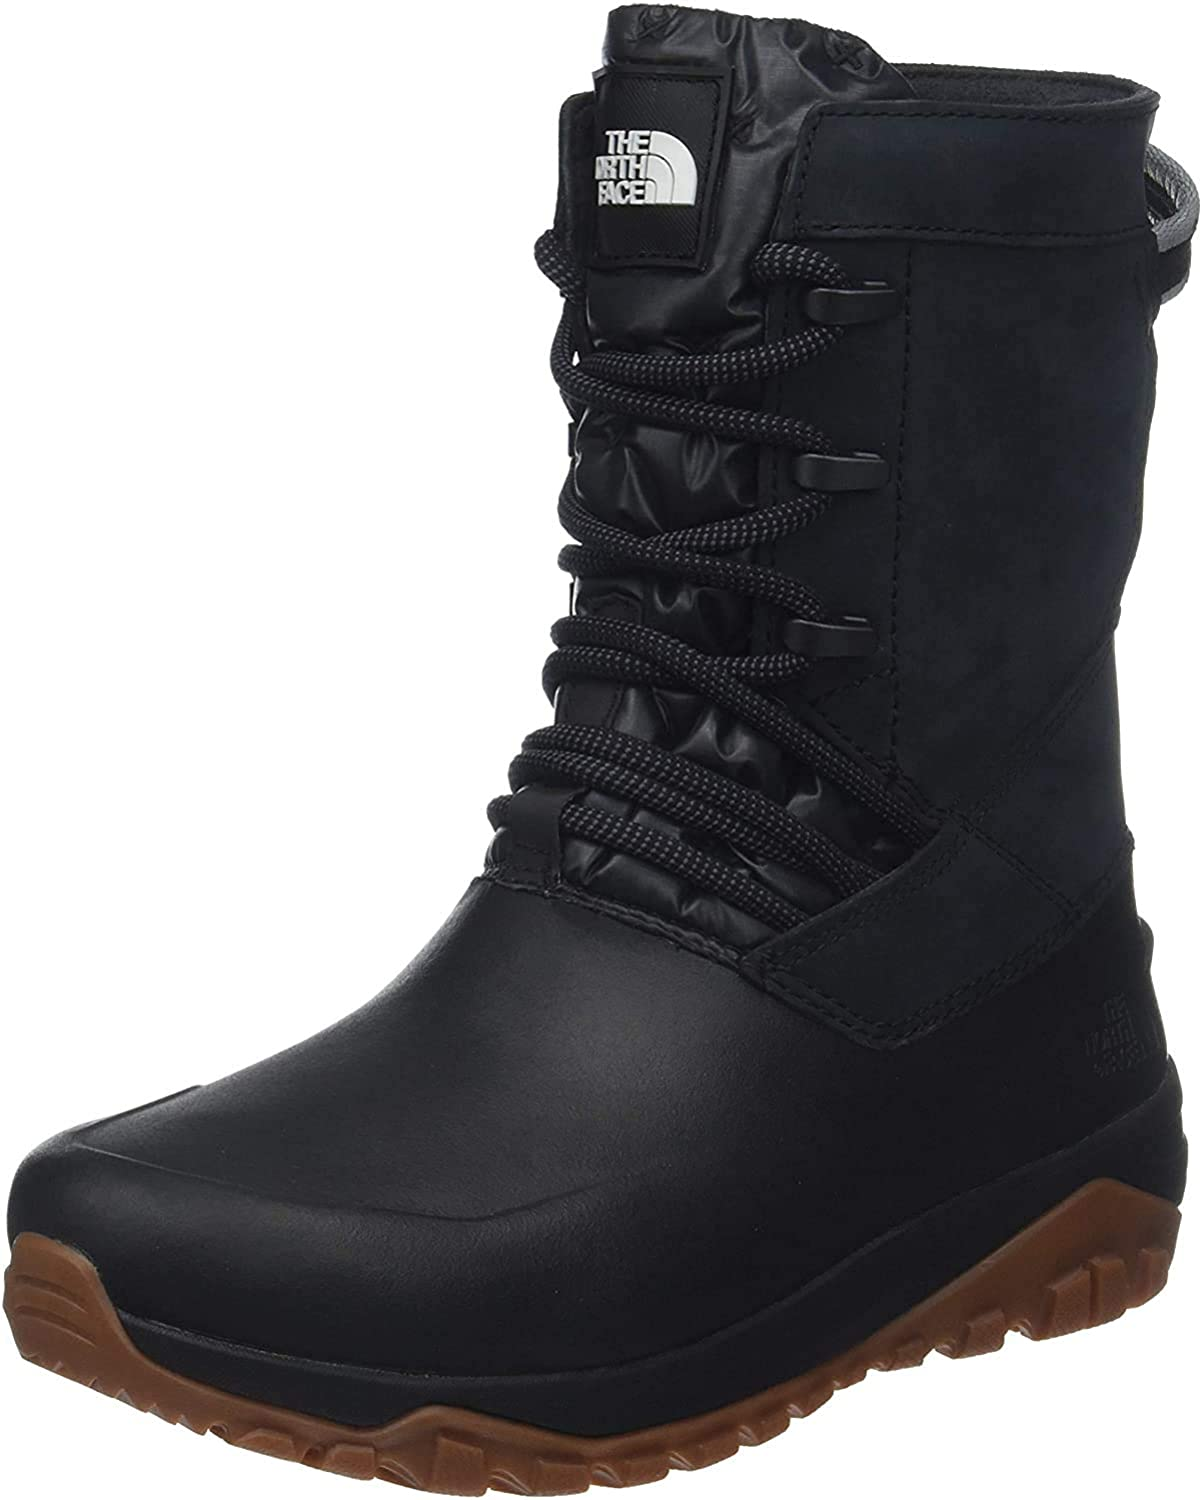 North Face Women's High Boots